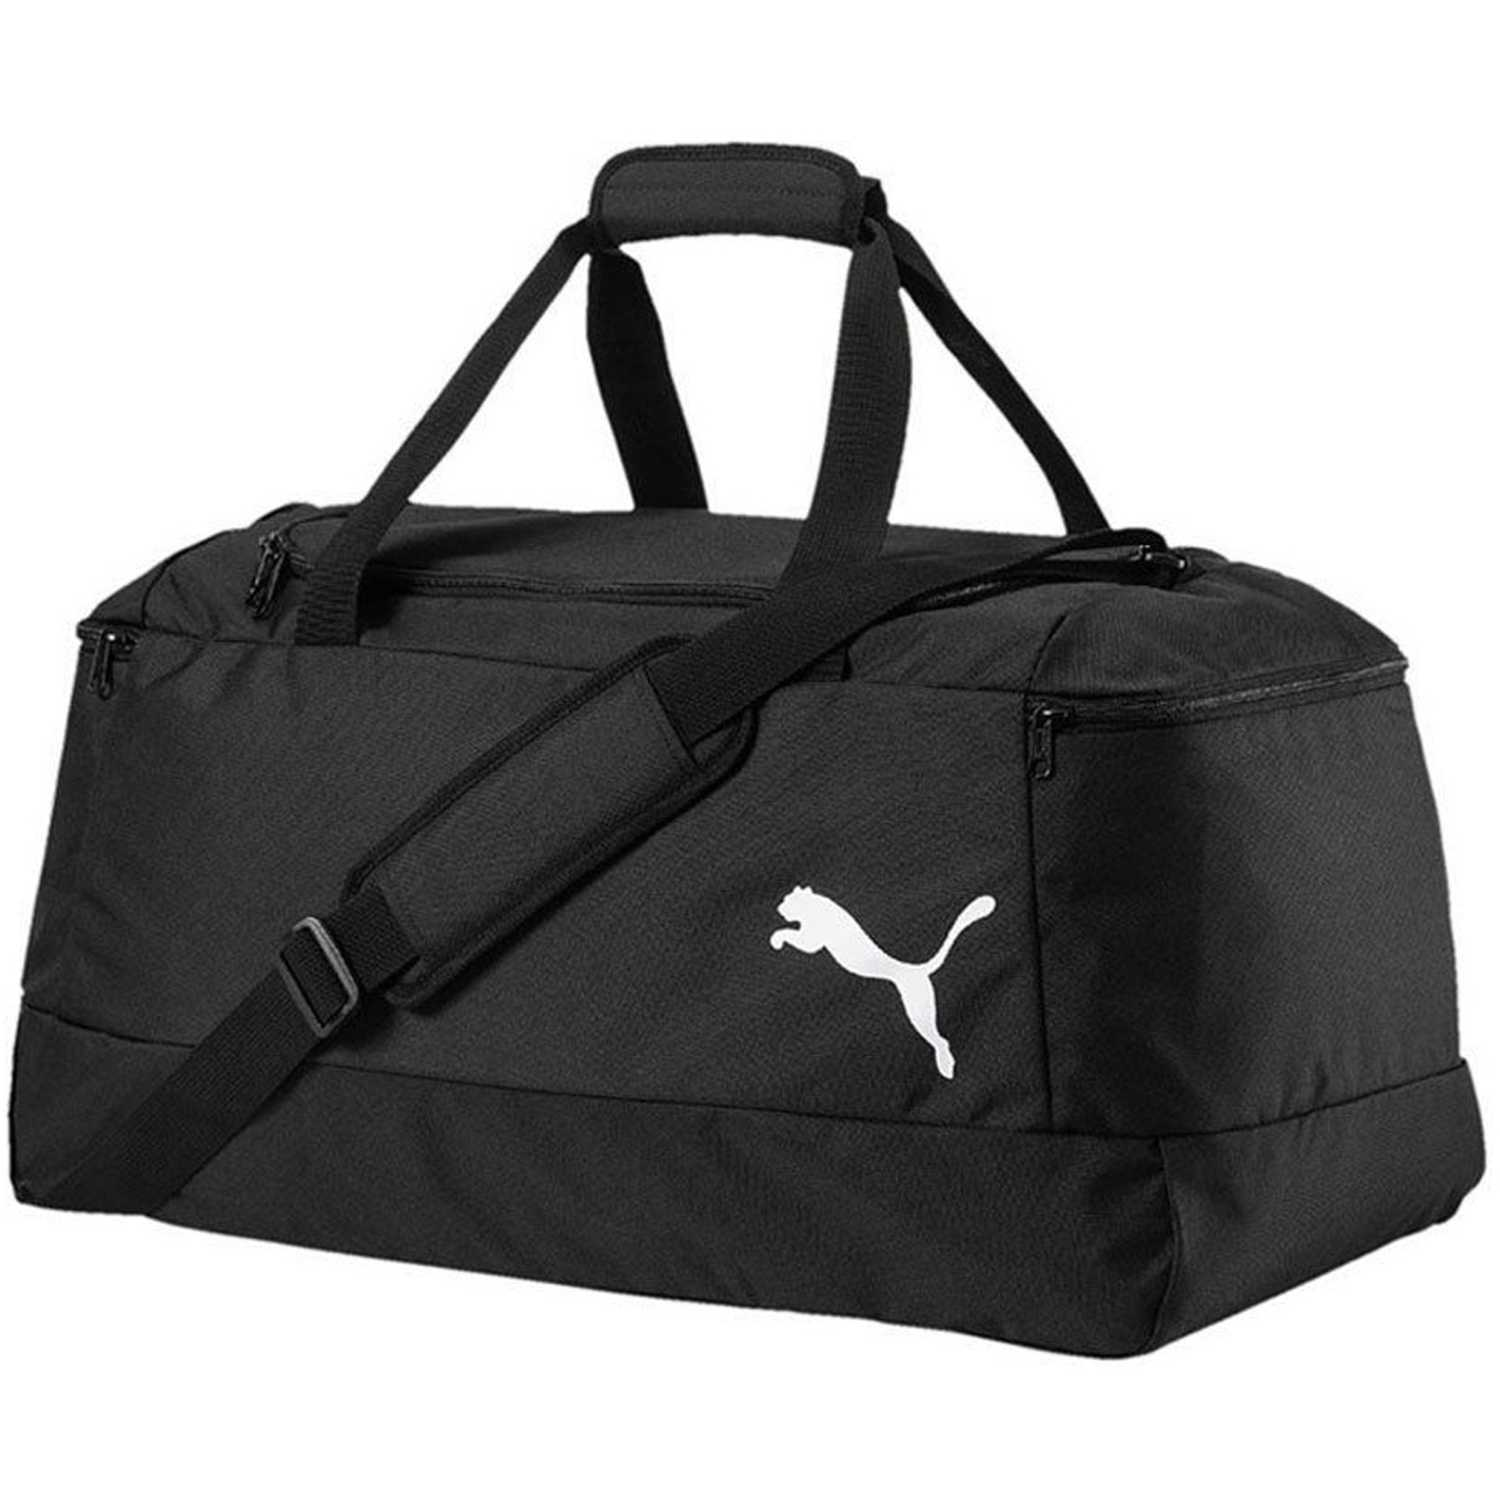 Puma PRO TRAINING II MEDIUM BAG Negro / blanco Bolsos de gimnasio